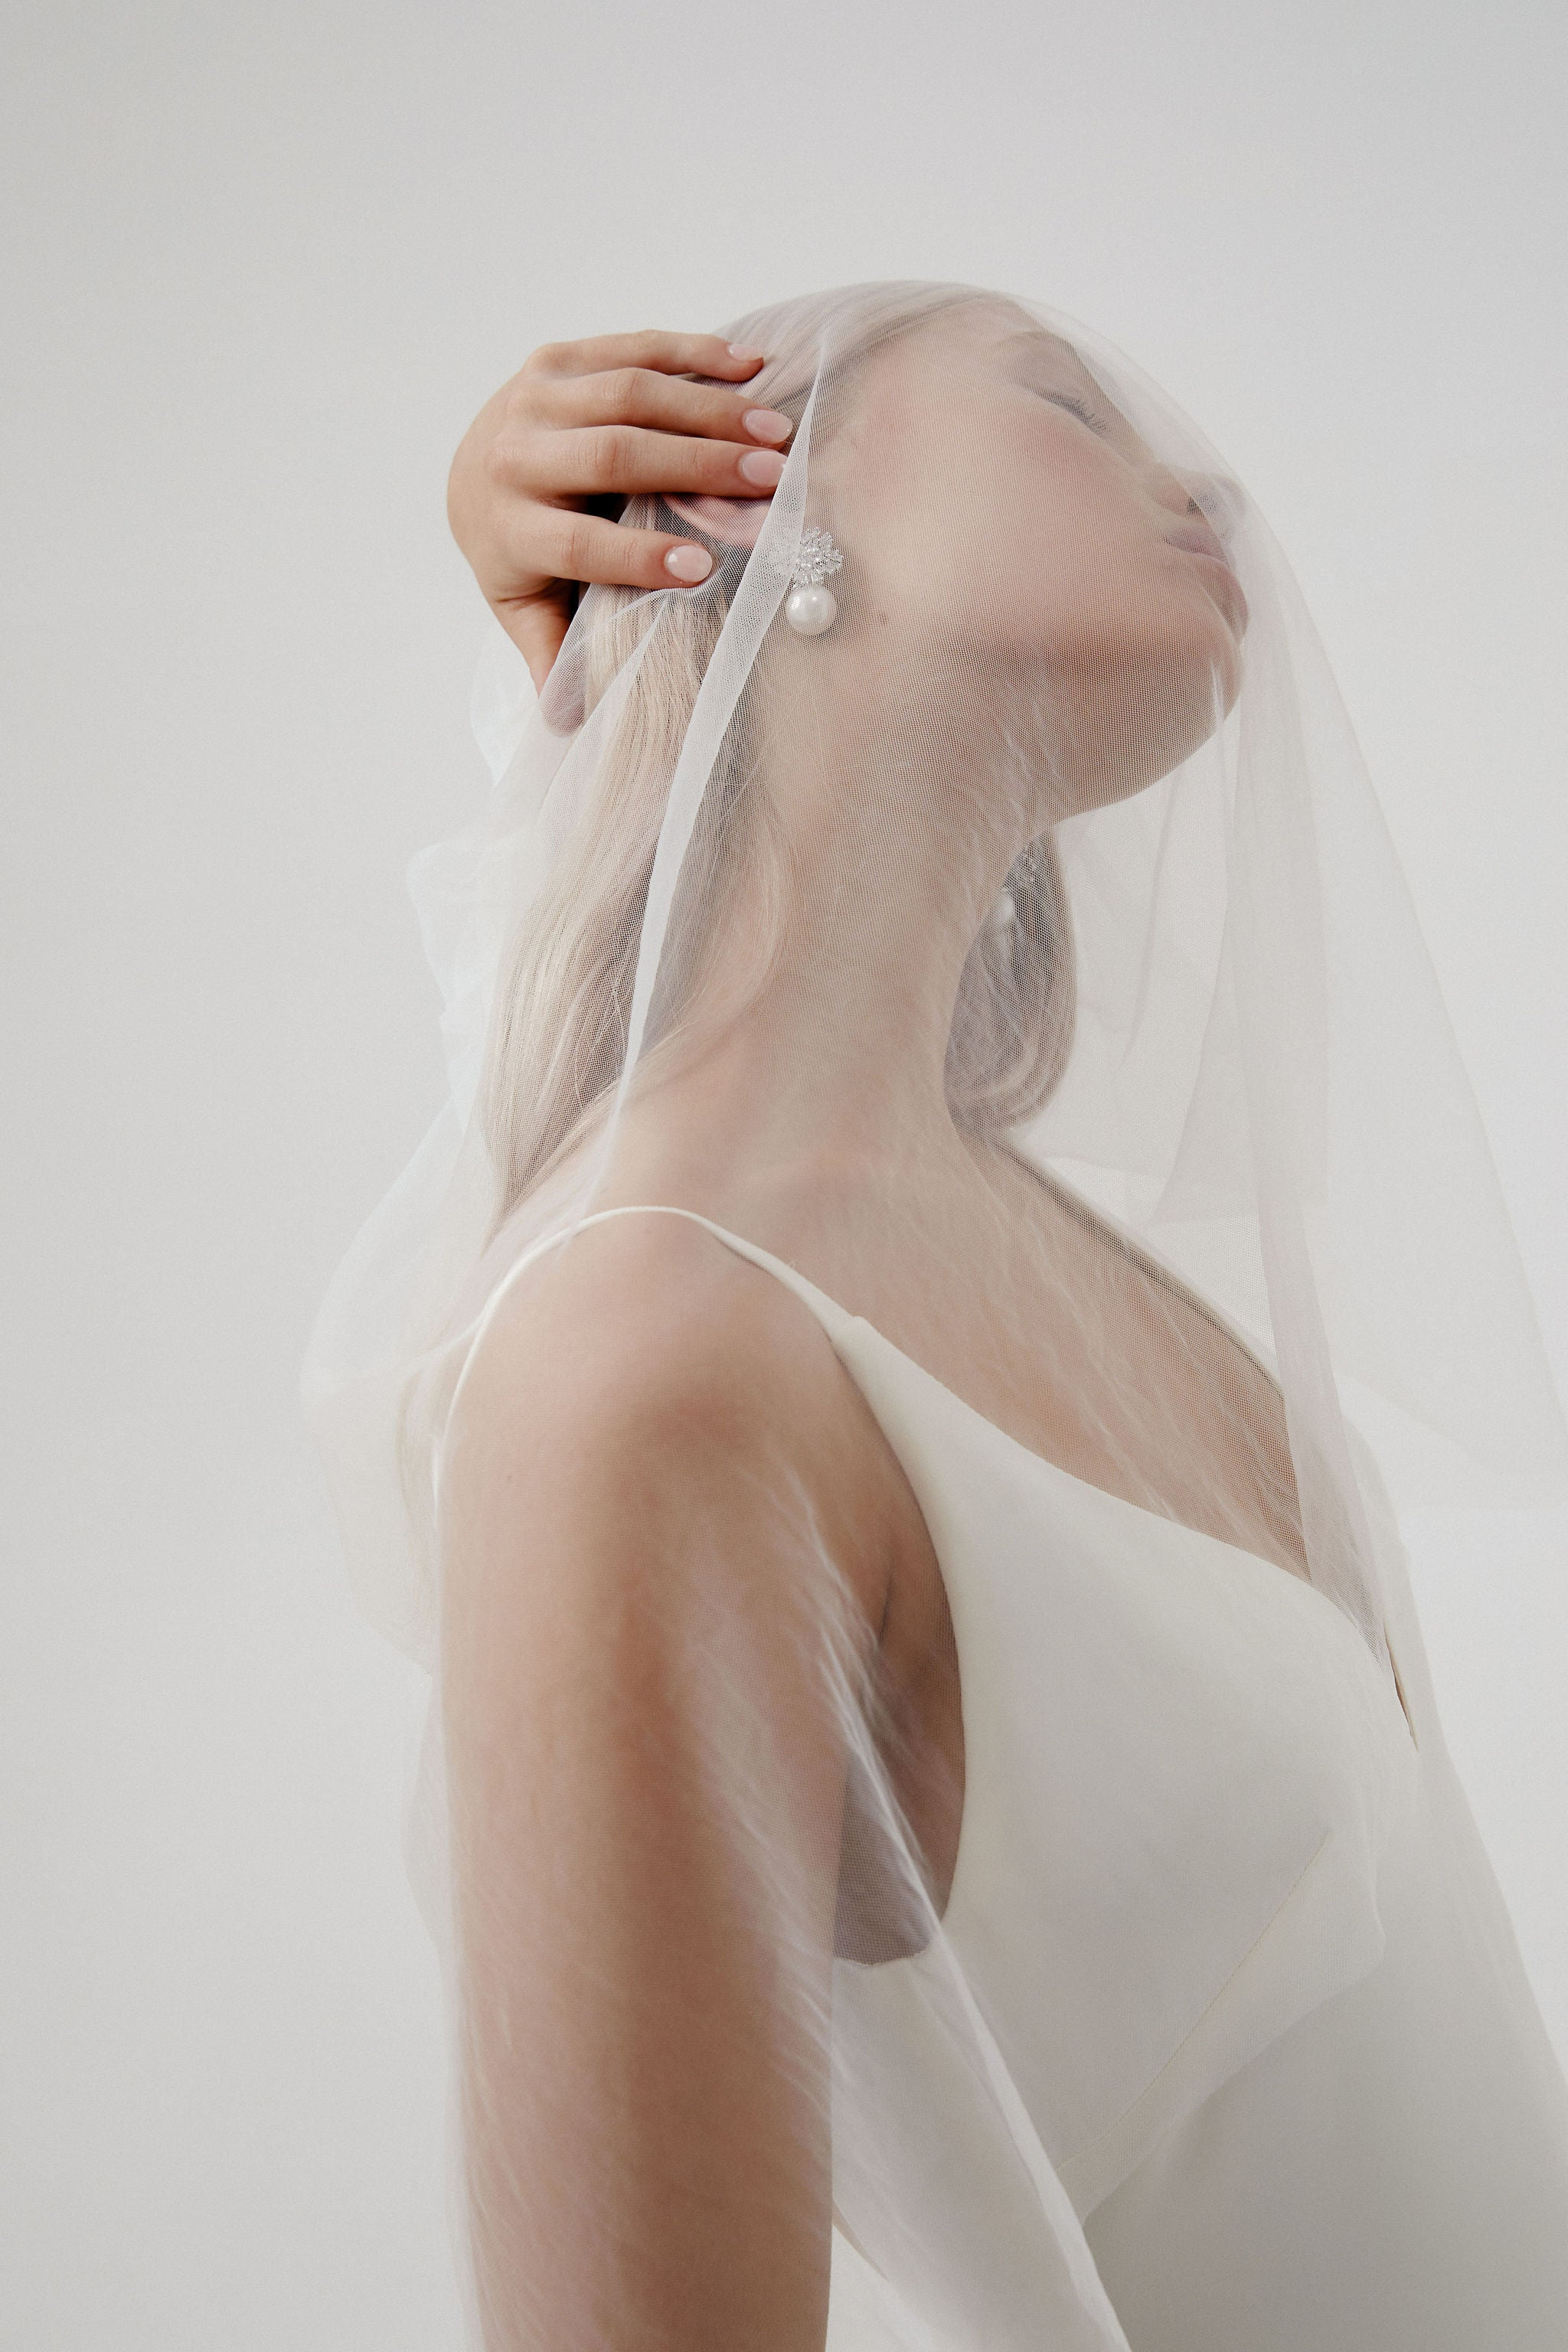 Statement Earrings Wedding with vclip detachable veil for Amelie George bridal campaign 2020